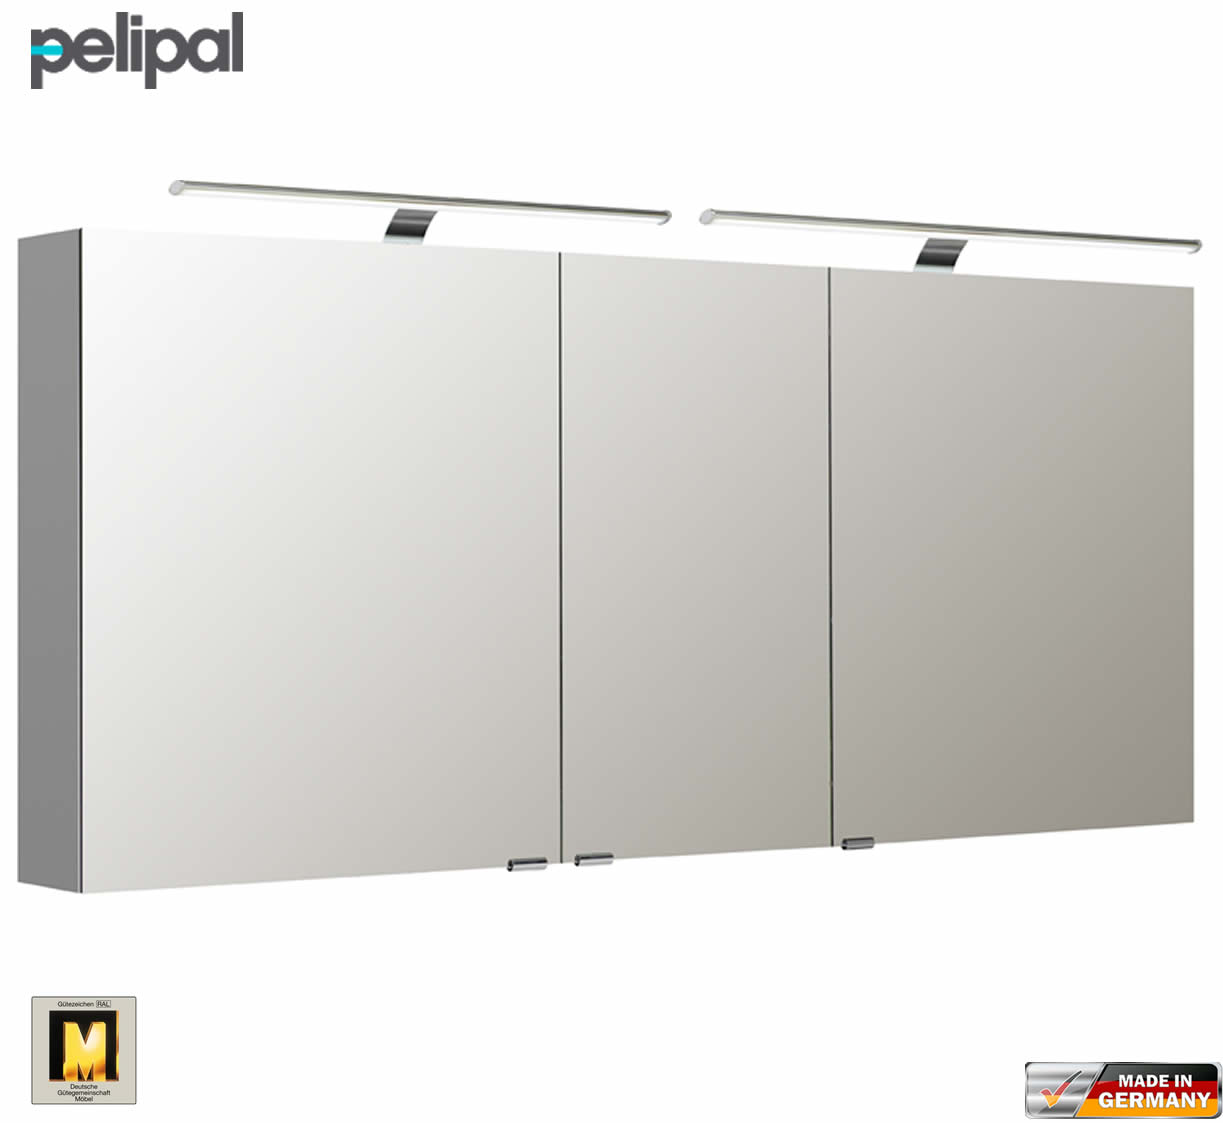 pelipal neutraler spiegelschrank s5 160 cm mit 2 led aufbauleuchten impulsbad. Black Bedroom Furniture Sets. Home Design Ideas